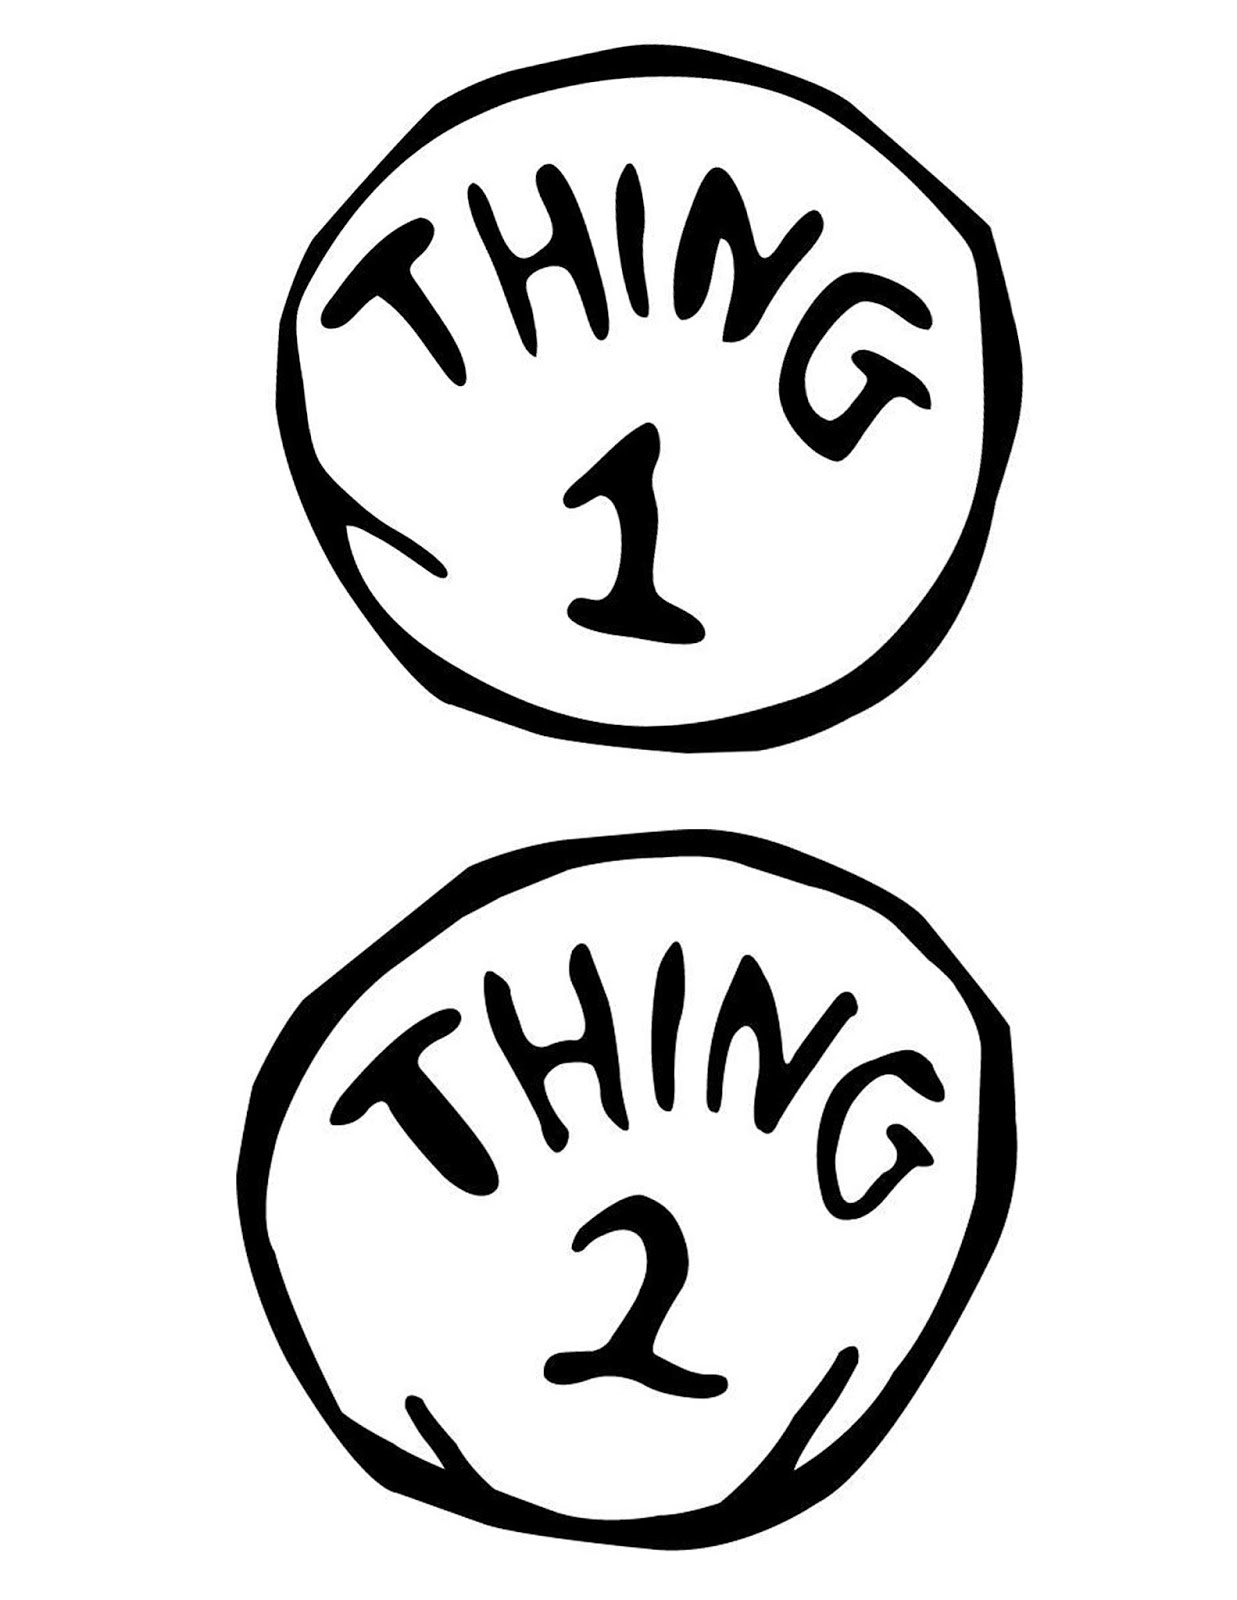 Thing 1 And Thing 2 Printable | Free Download Best Thing 1 And Thing - Thing 1 Thing 2 Free Printables